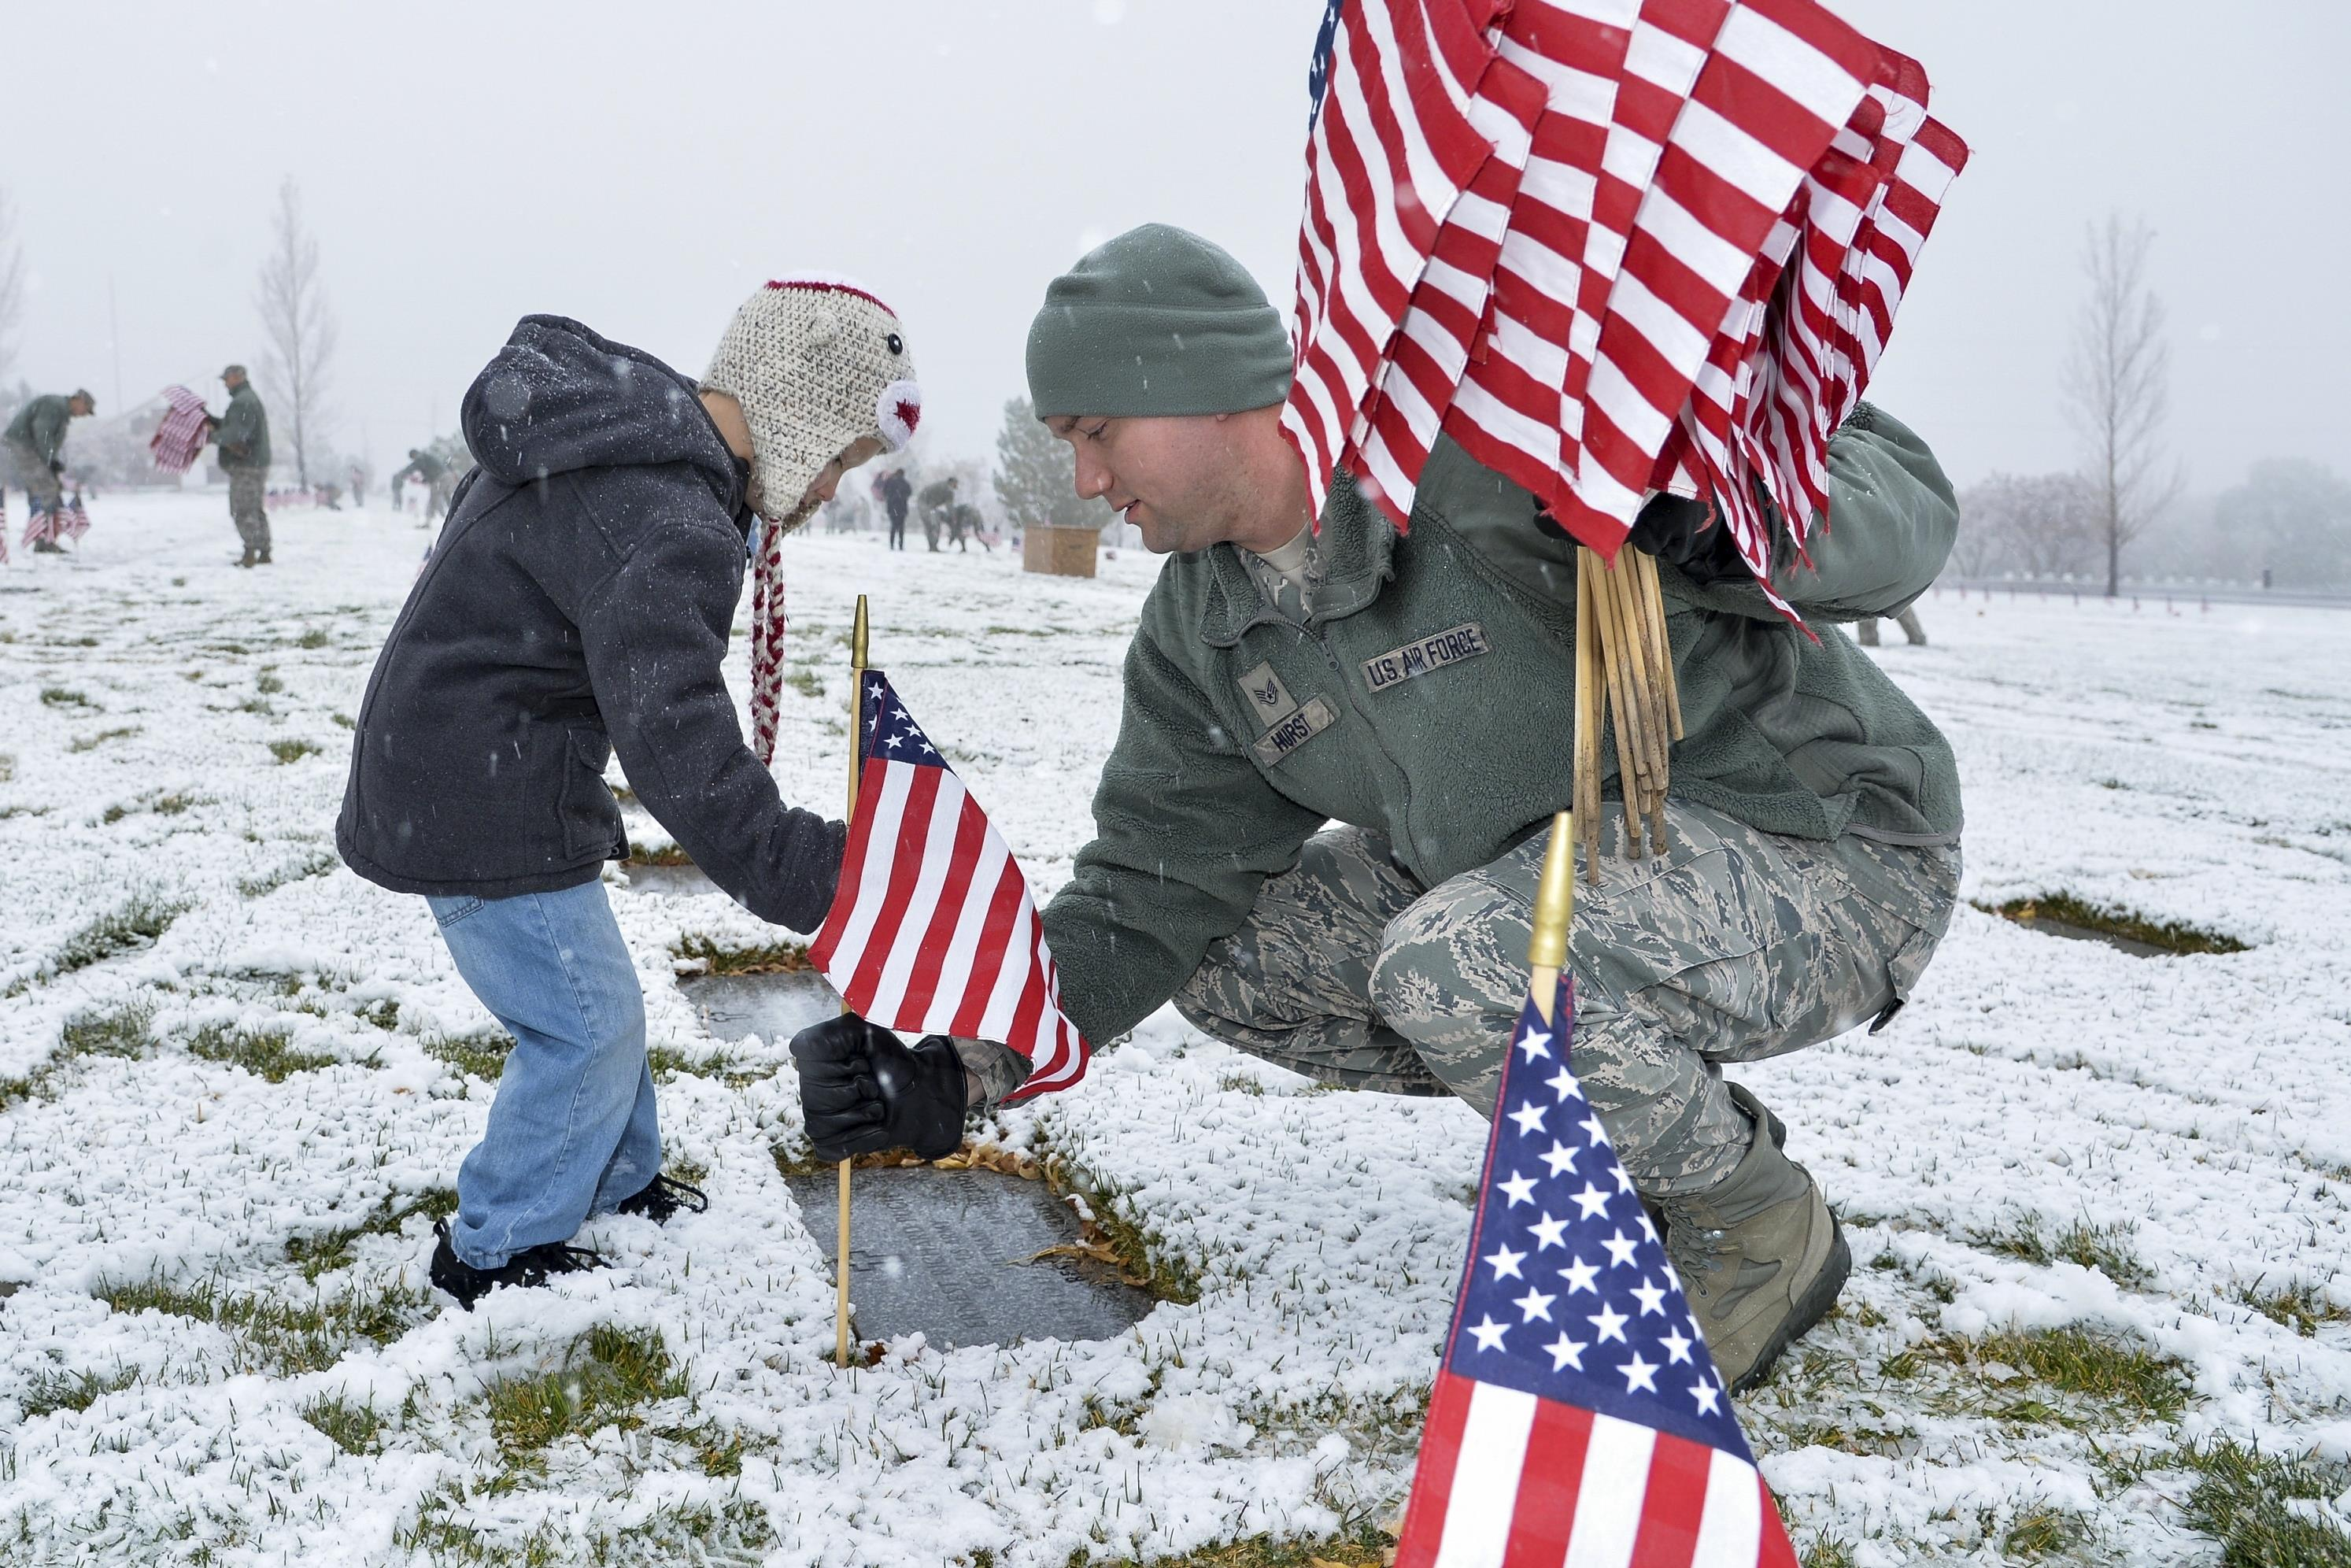 Air Force Staff Sgt. Louis Hurst and son, Ethan, place a flag beside a burial site